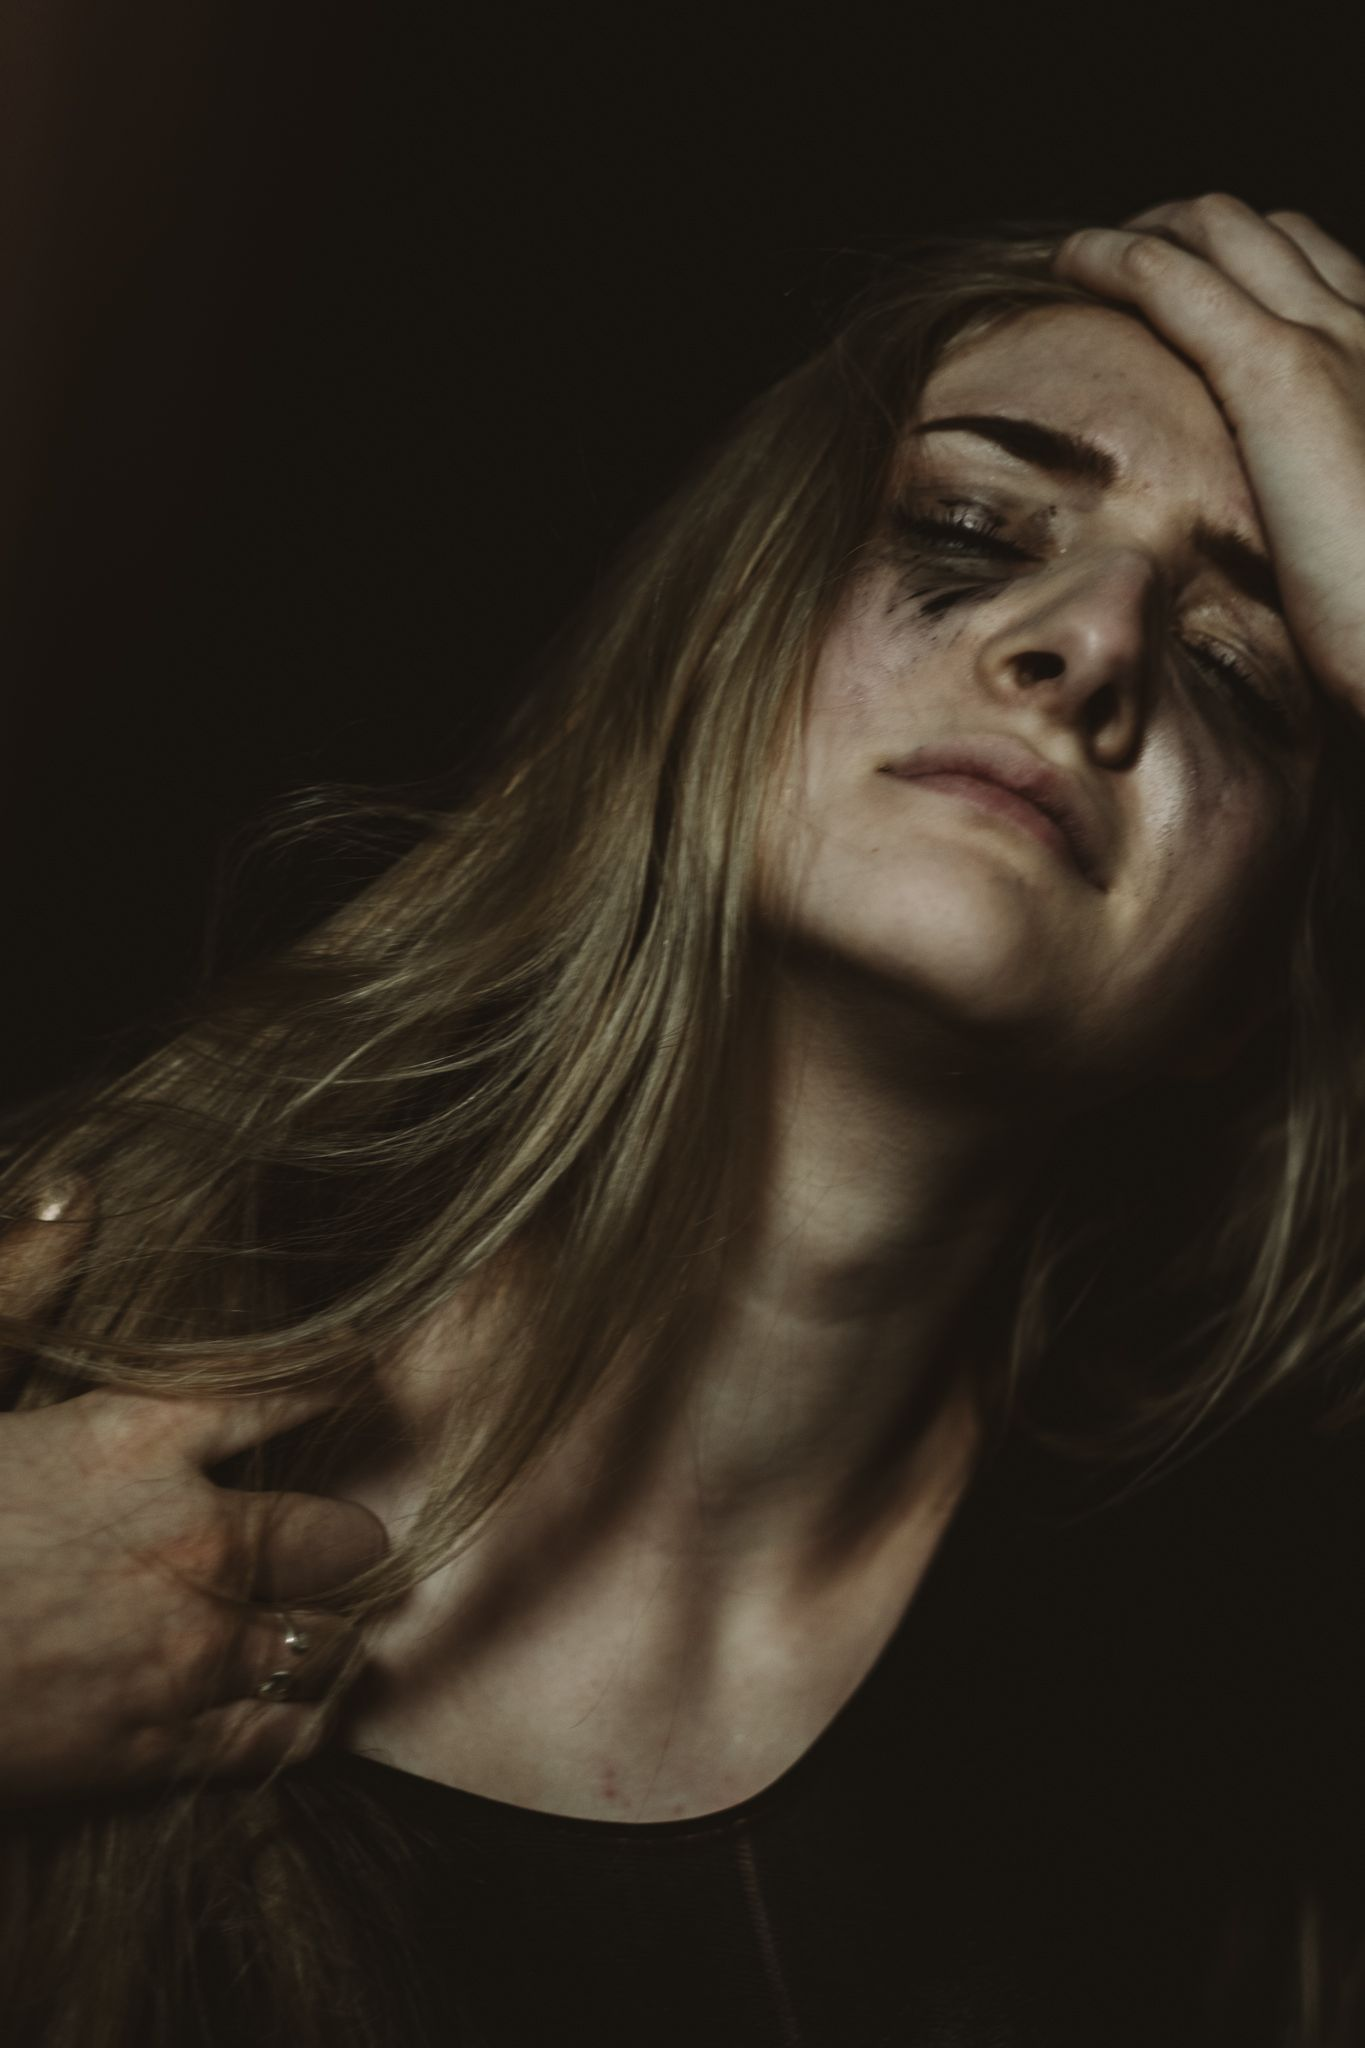 sadness + frustration Senior, girl, portrait, dark, LXC ...